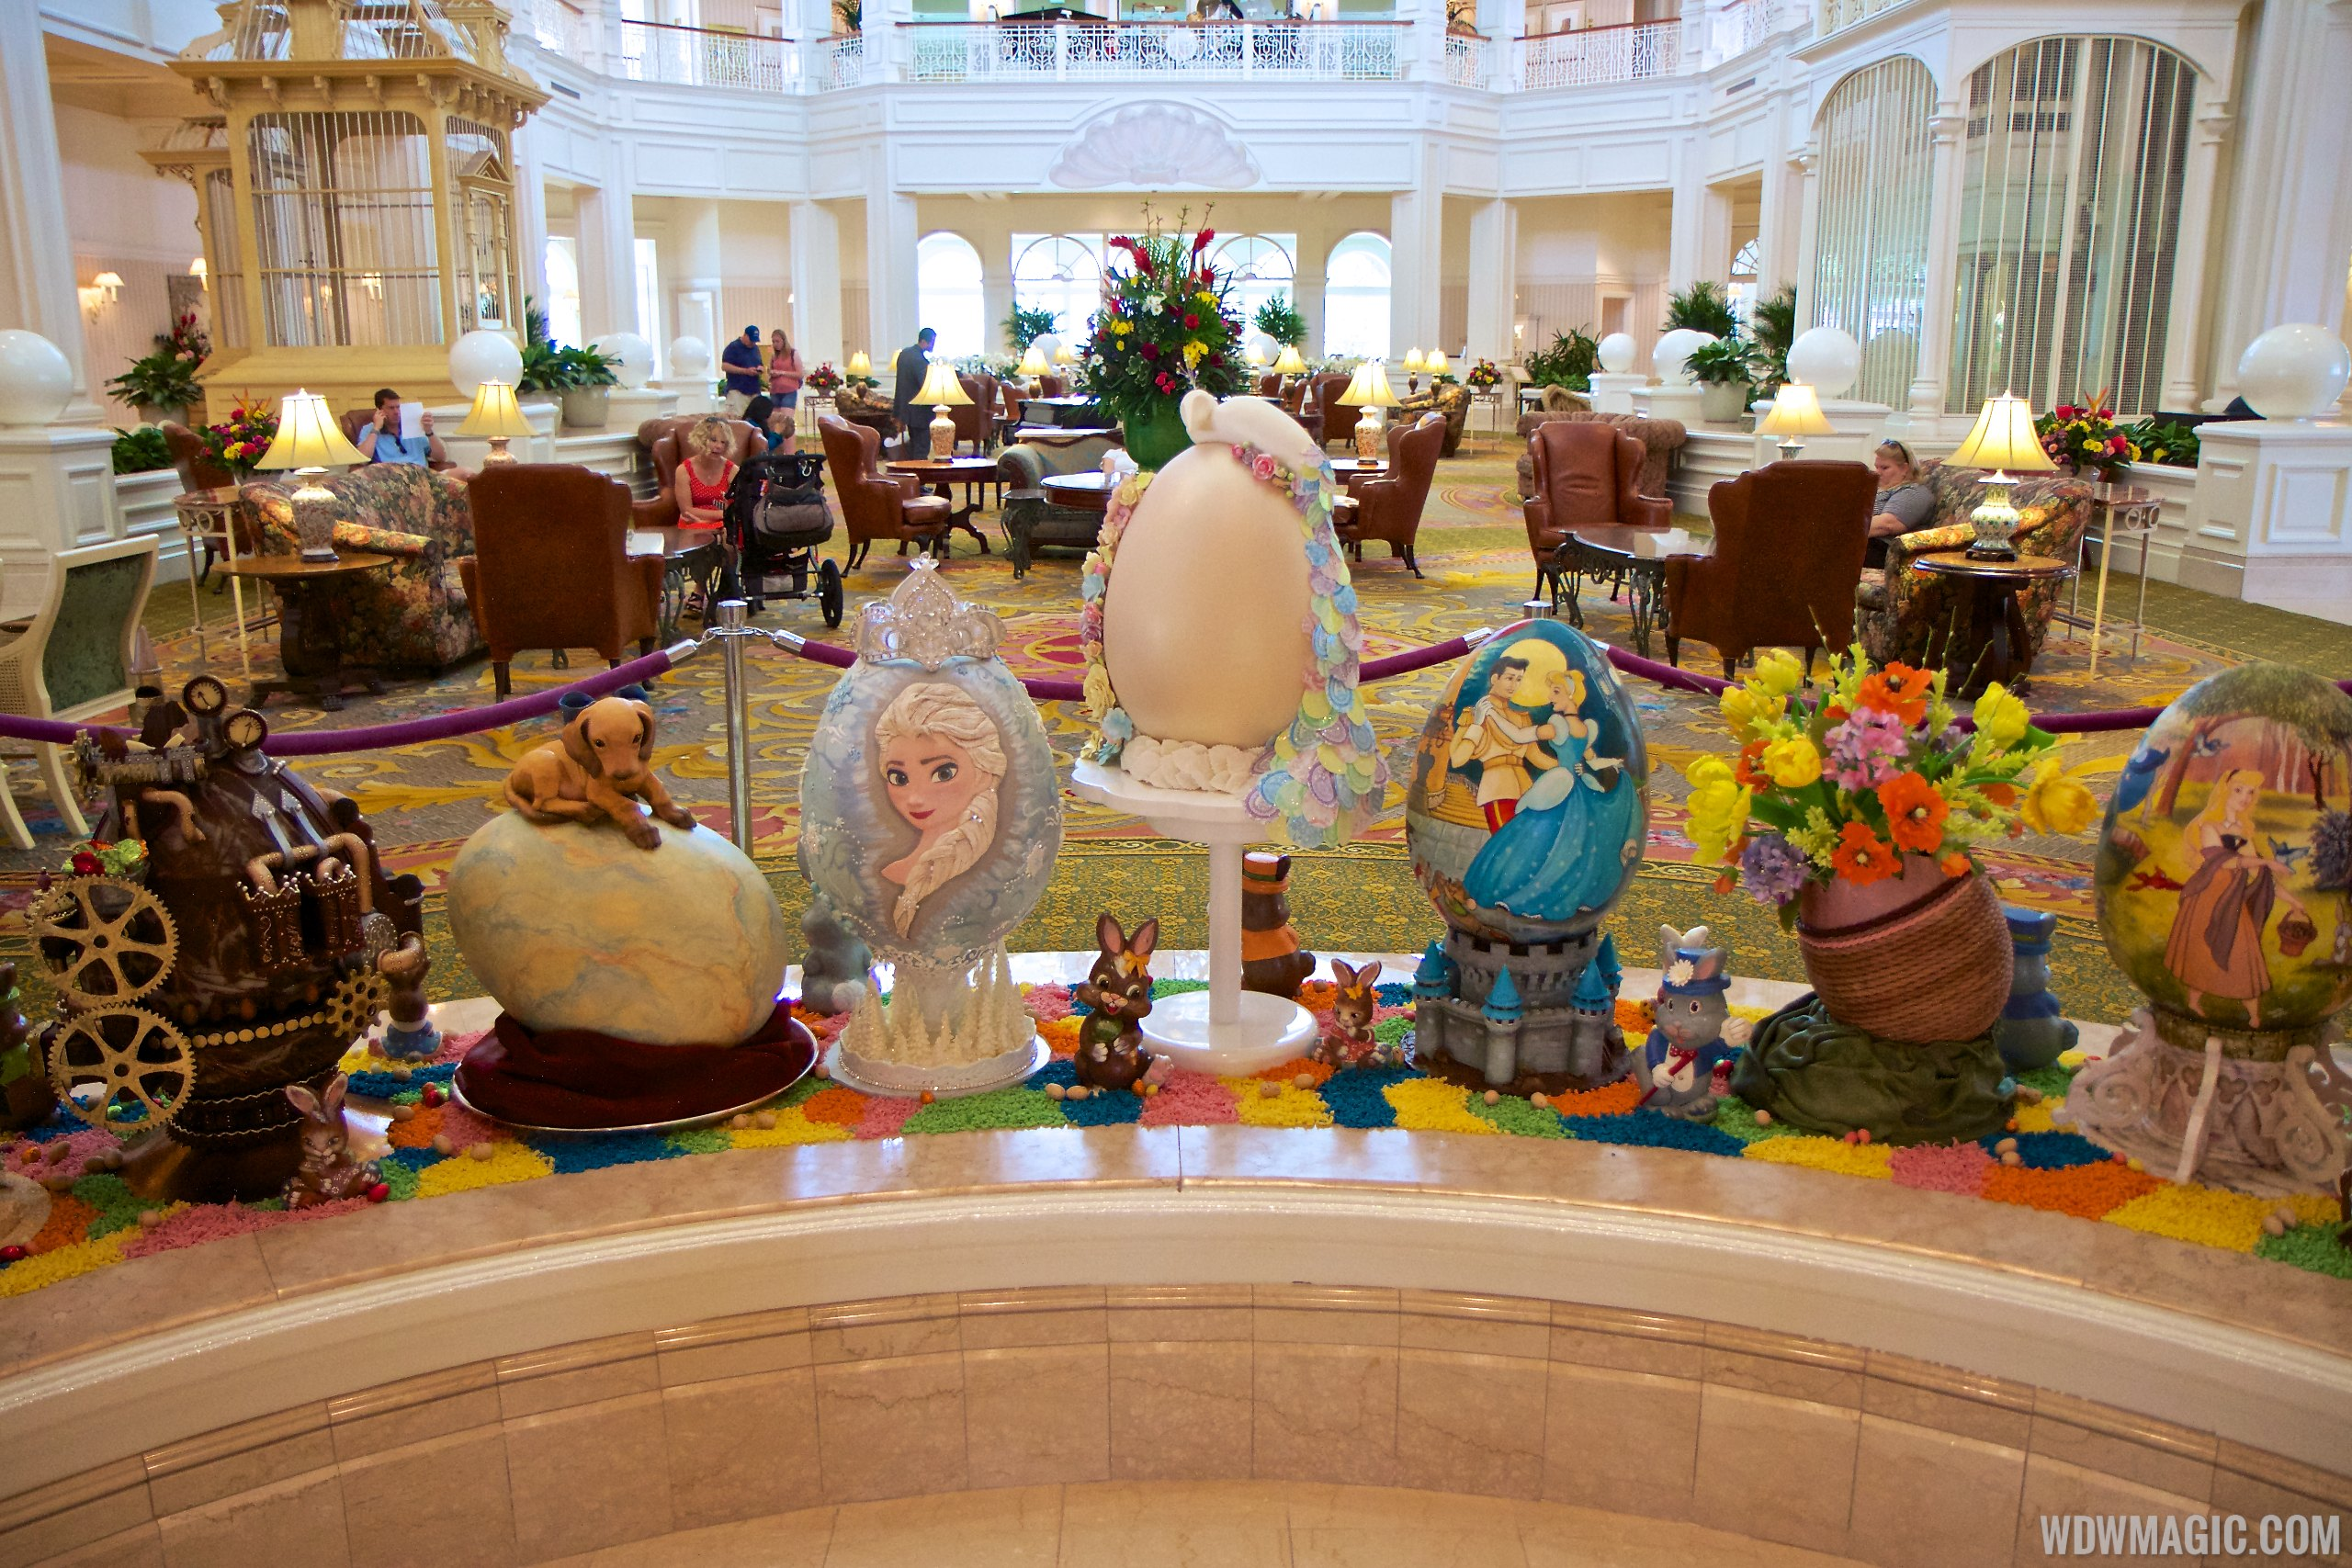 2014 Grand Floridian Resort Easter Eggs  Photo 1 of 9 - Disney Magic Floor Plan